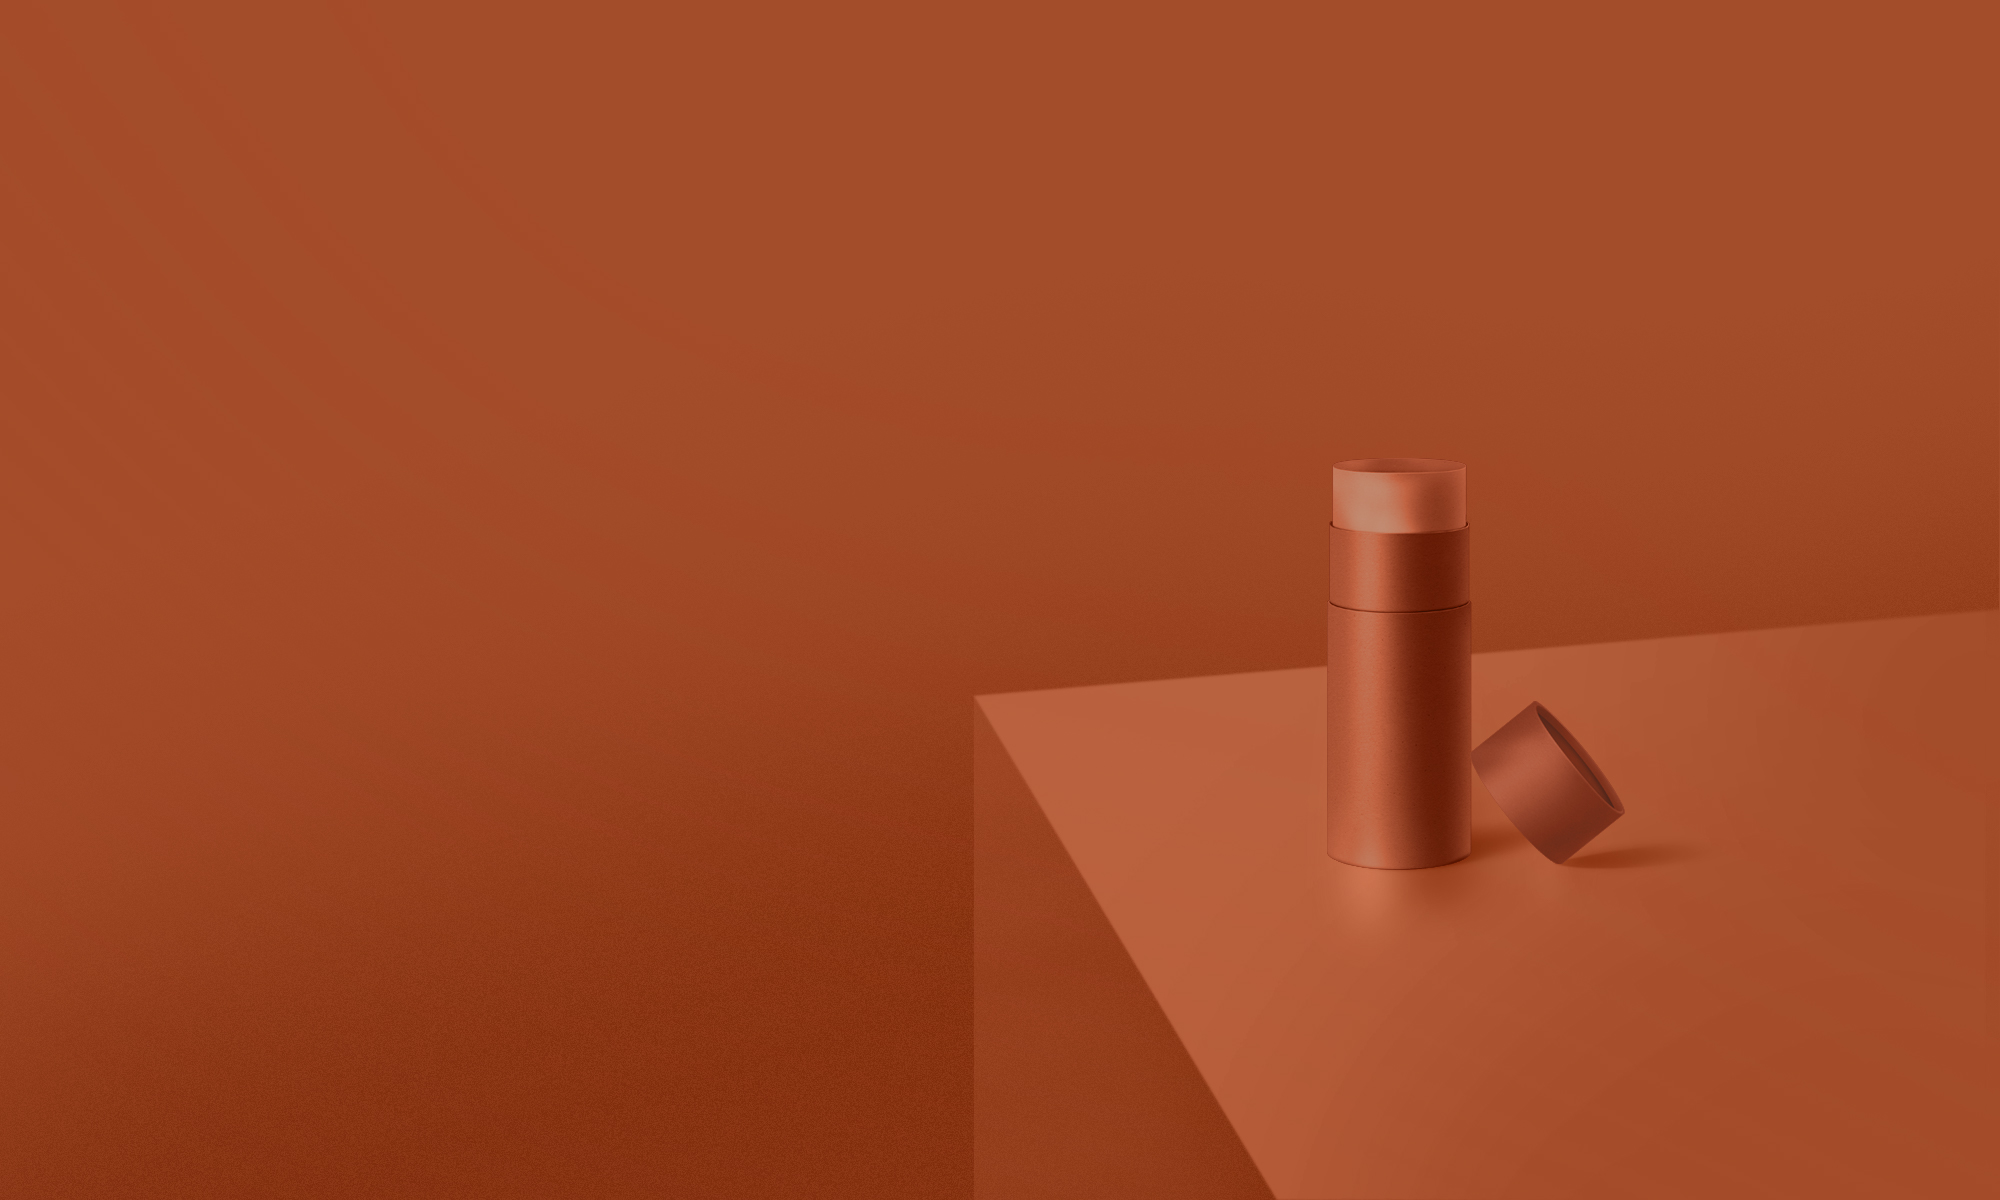 Round canister on dark orange surface in monochromatic environment.